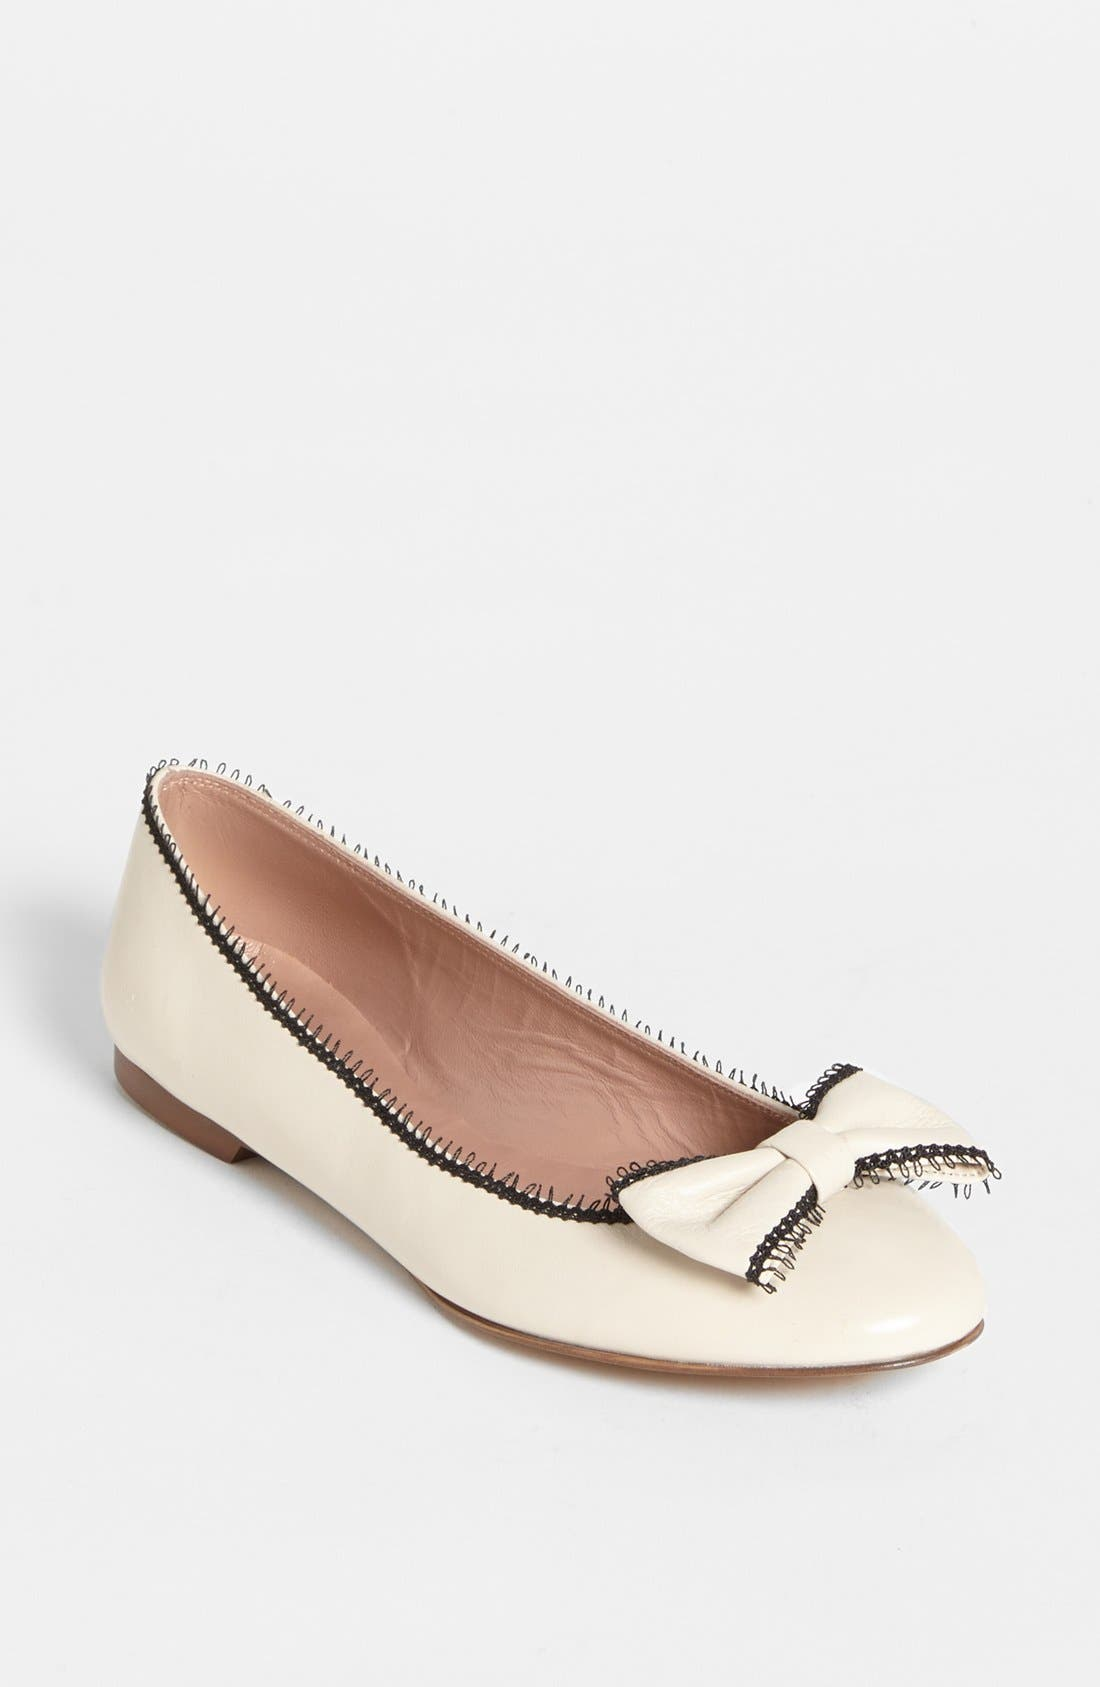 Alternate Image 1 Selected - RED Valentino Ballerina Flat (Online Only)